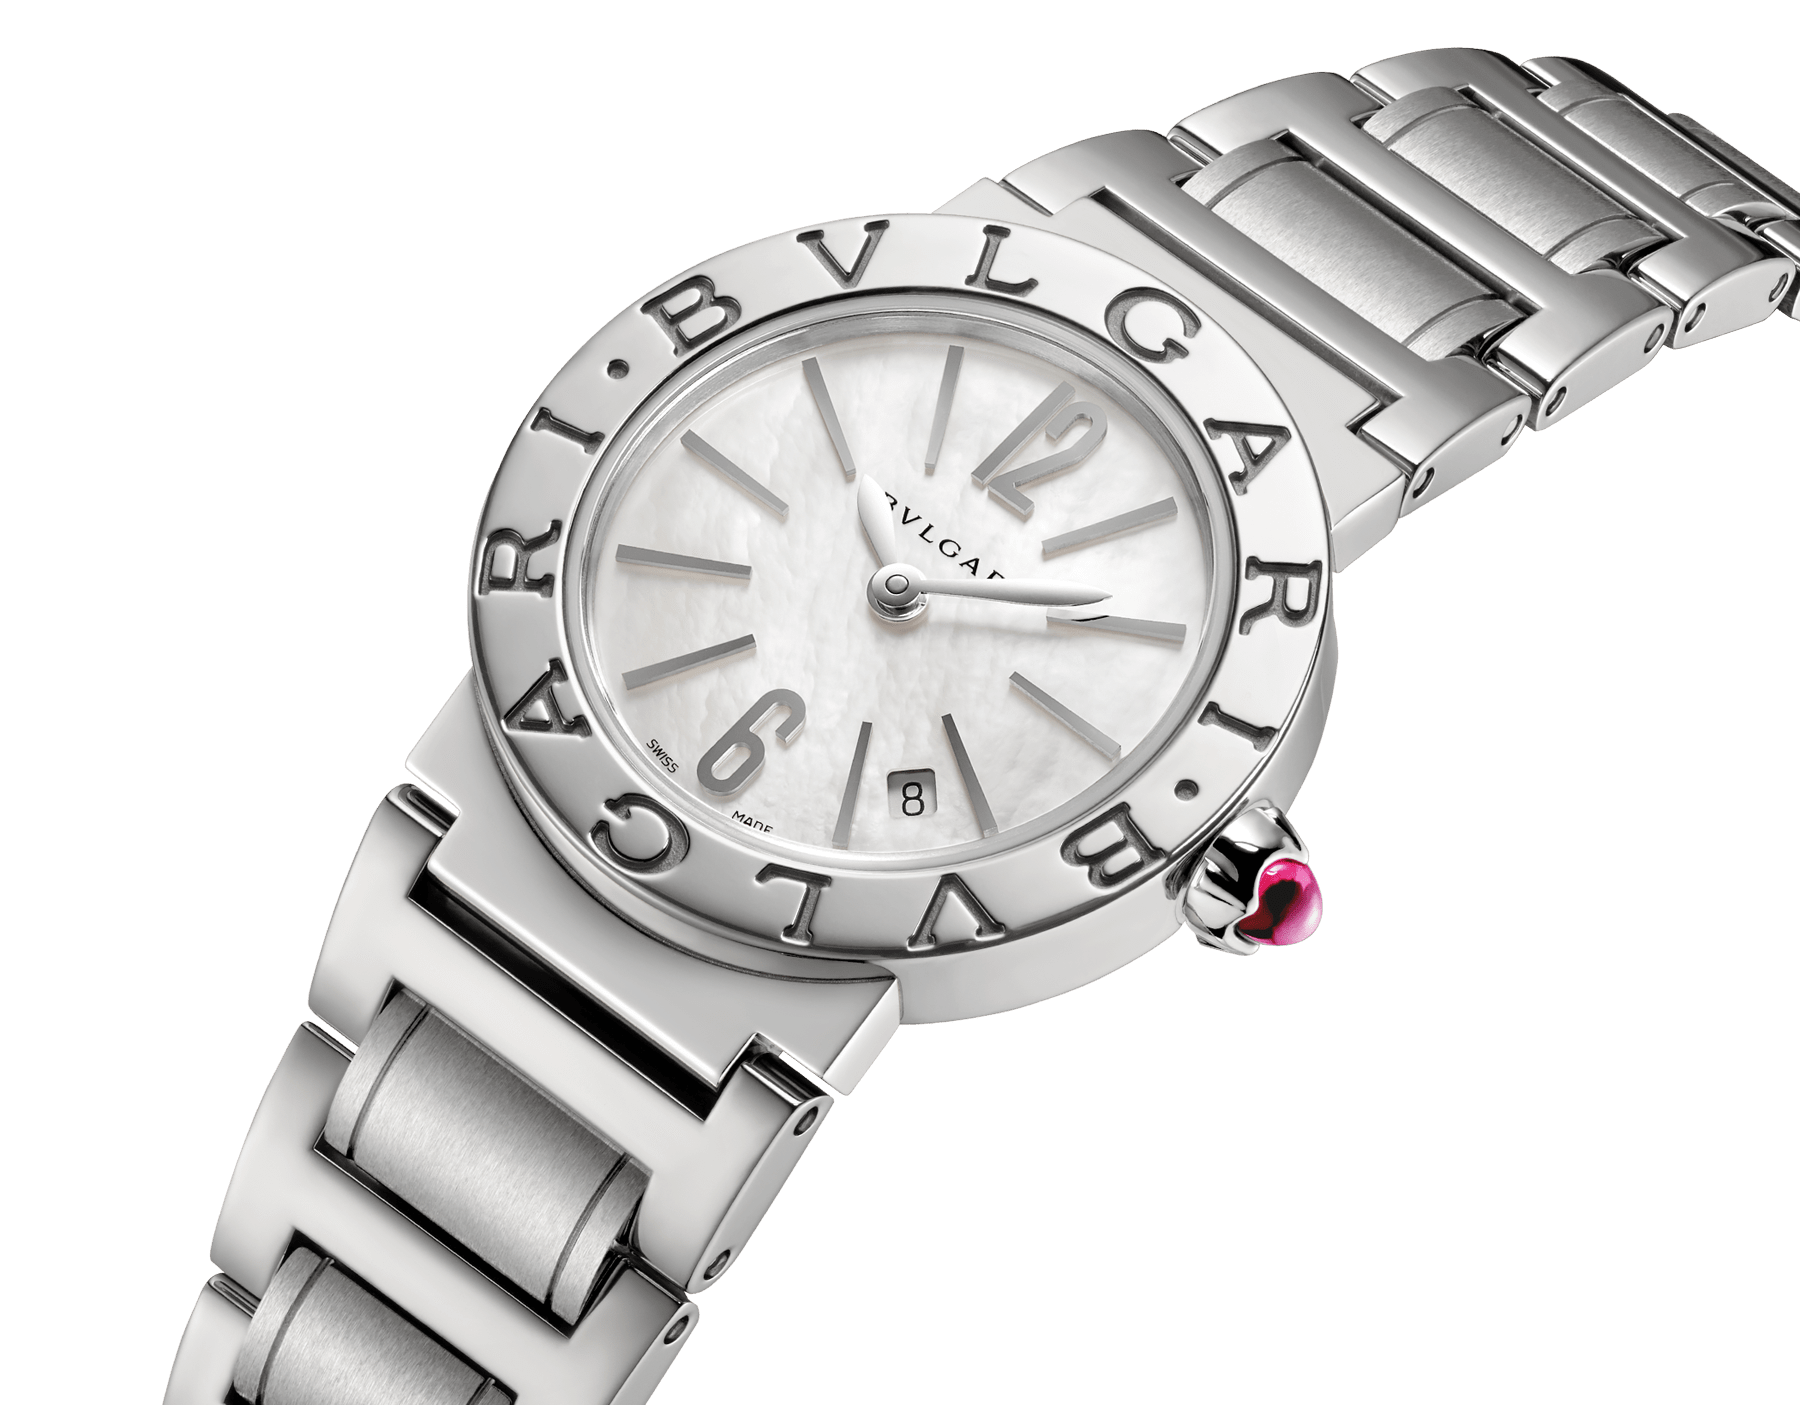 BVLGARI BVLGARI watch in stainless steel case and bracelet with white mother-of-pearl dial and date indication. Small model 101885 image 2